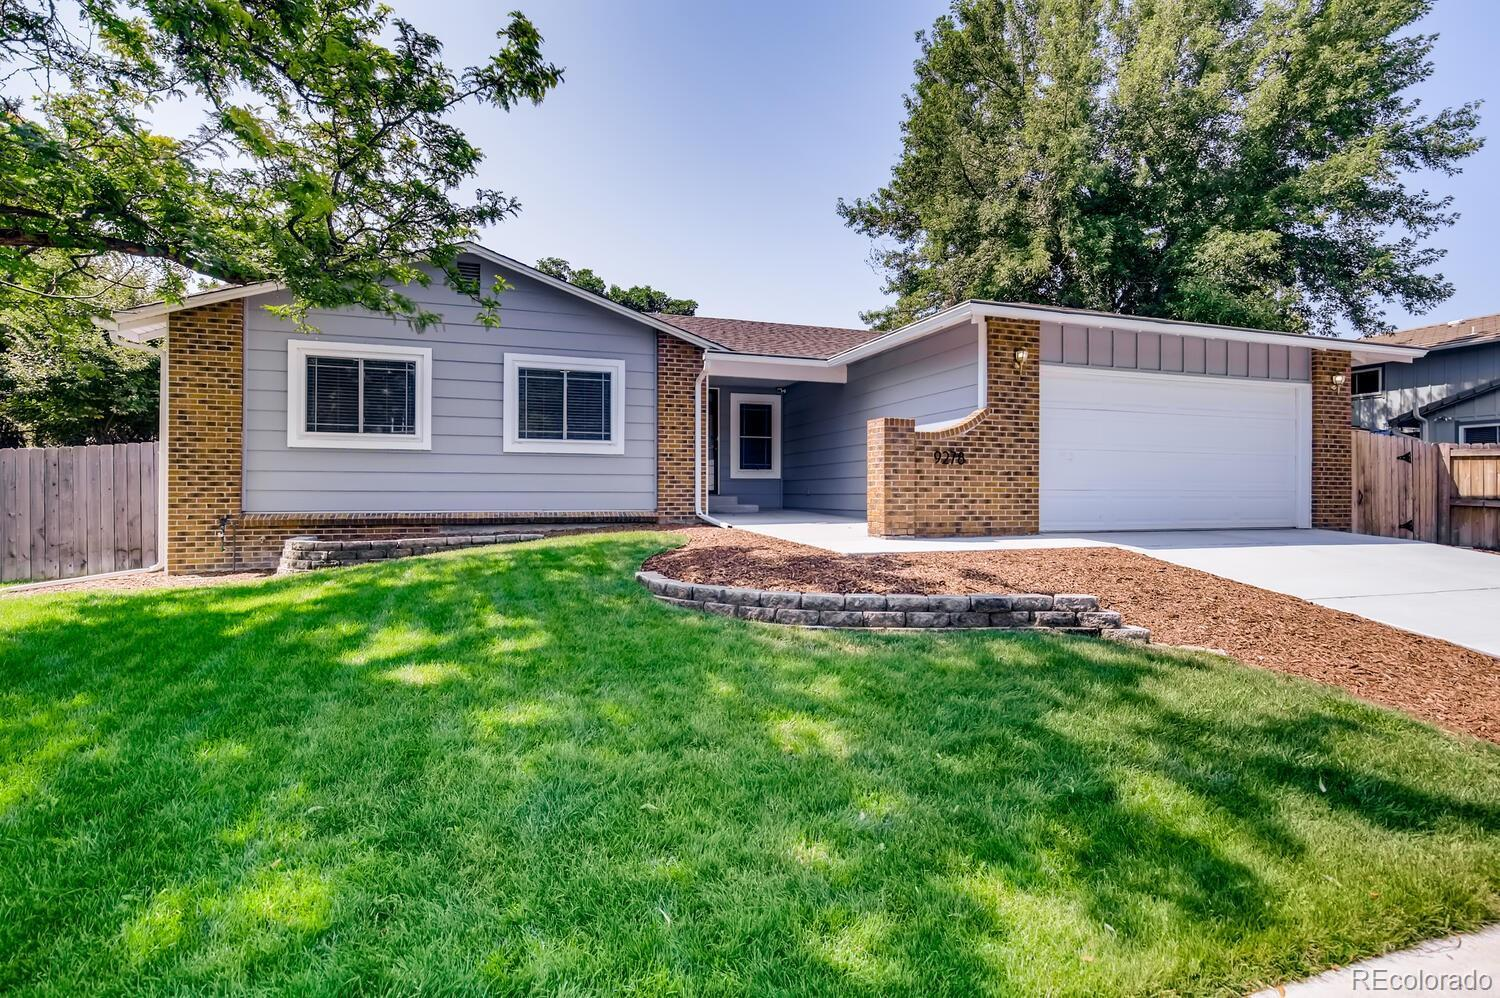 9278 W 91st Place, Westminster, CO 80021 - #: 6546572